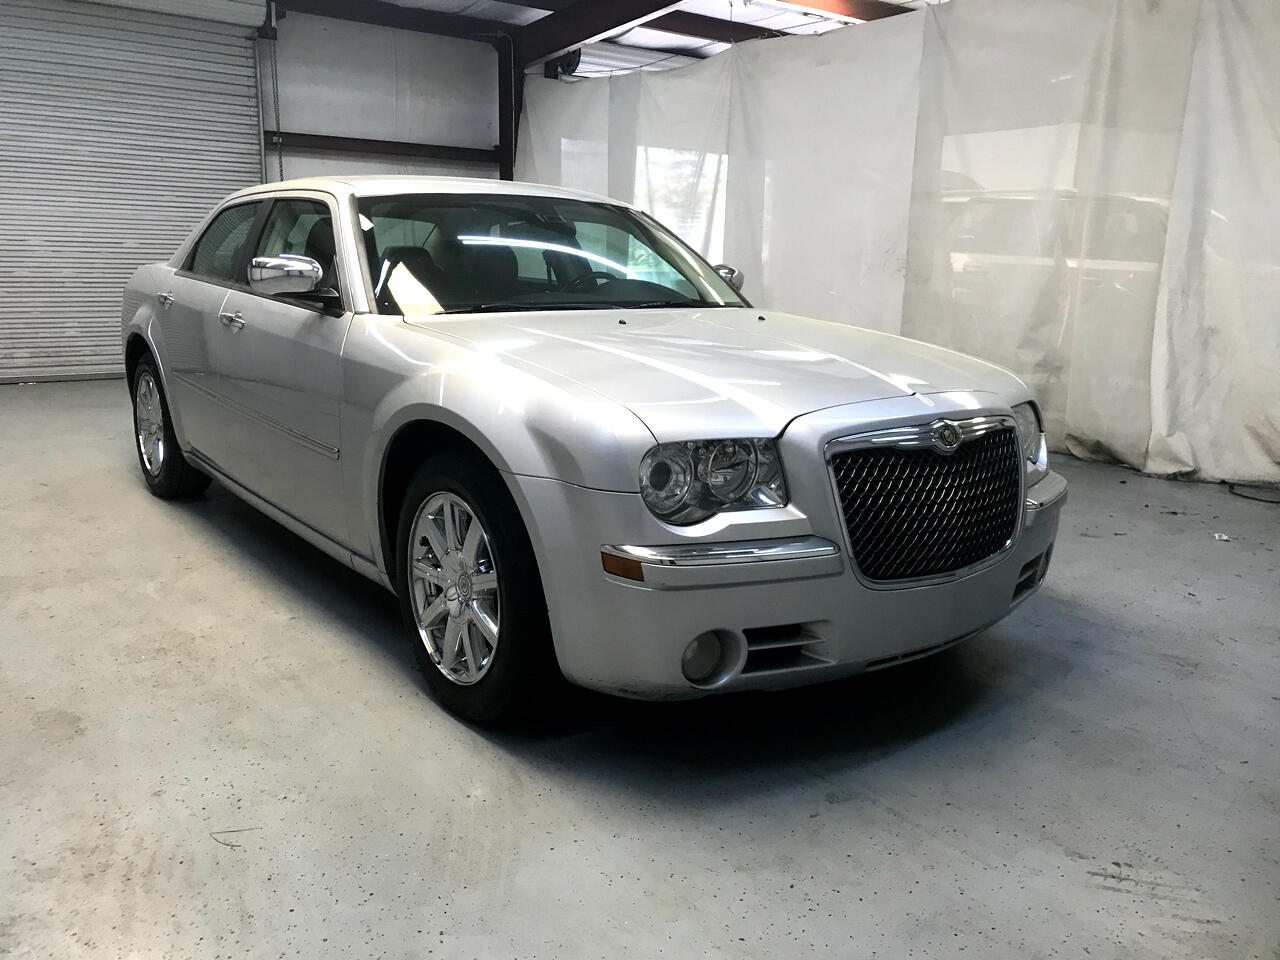 Chrysler 300 4dr Sdn Limited RWD 2010